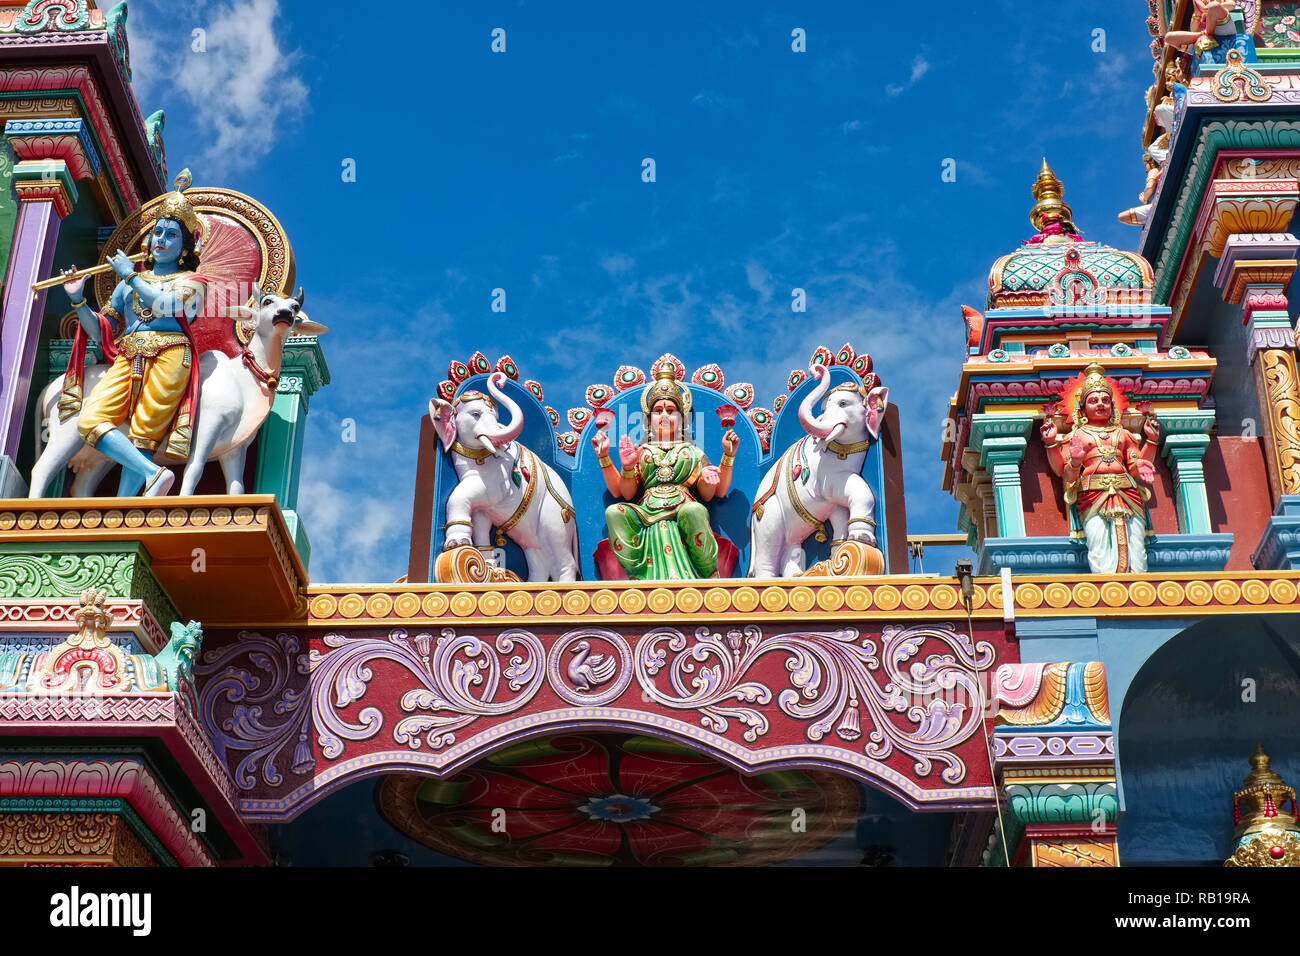 A partial view of the roof of Sri Vadapathira Kaliamman Temple in Serangoon Road, Singapore, with figures of Hindu deities, elephants and a cow - Stock Image